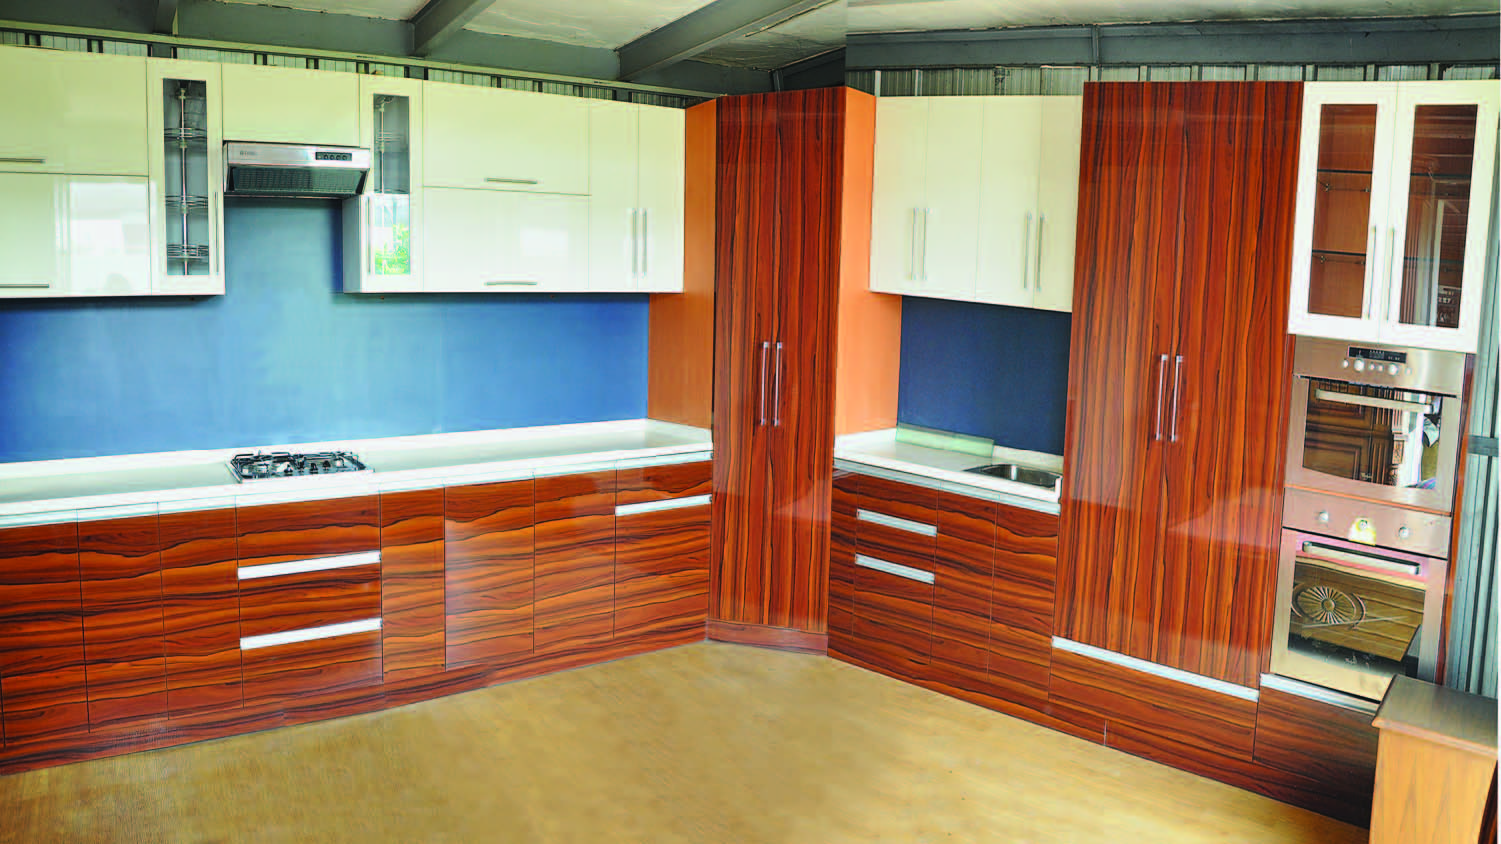 Modular kitchen furniture - Name Wood Kitchen Furniture Model No Modular Kitchen Dsw 030